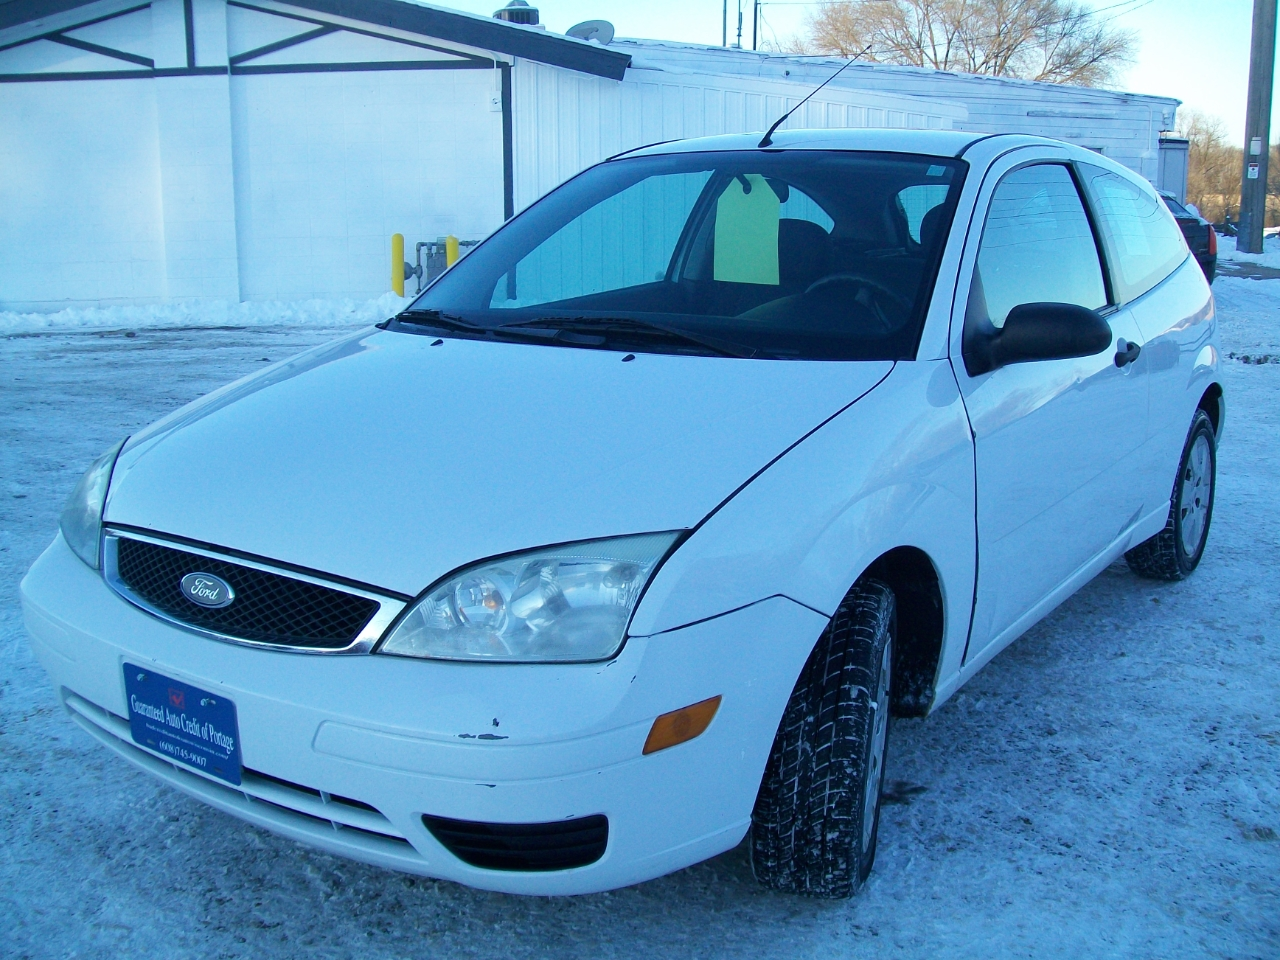 2007 Ford Focus 3dr Cpe S